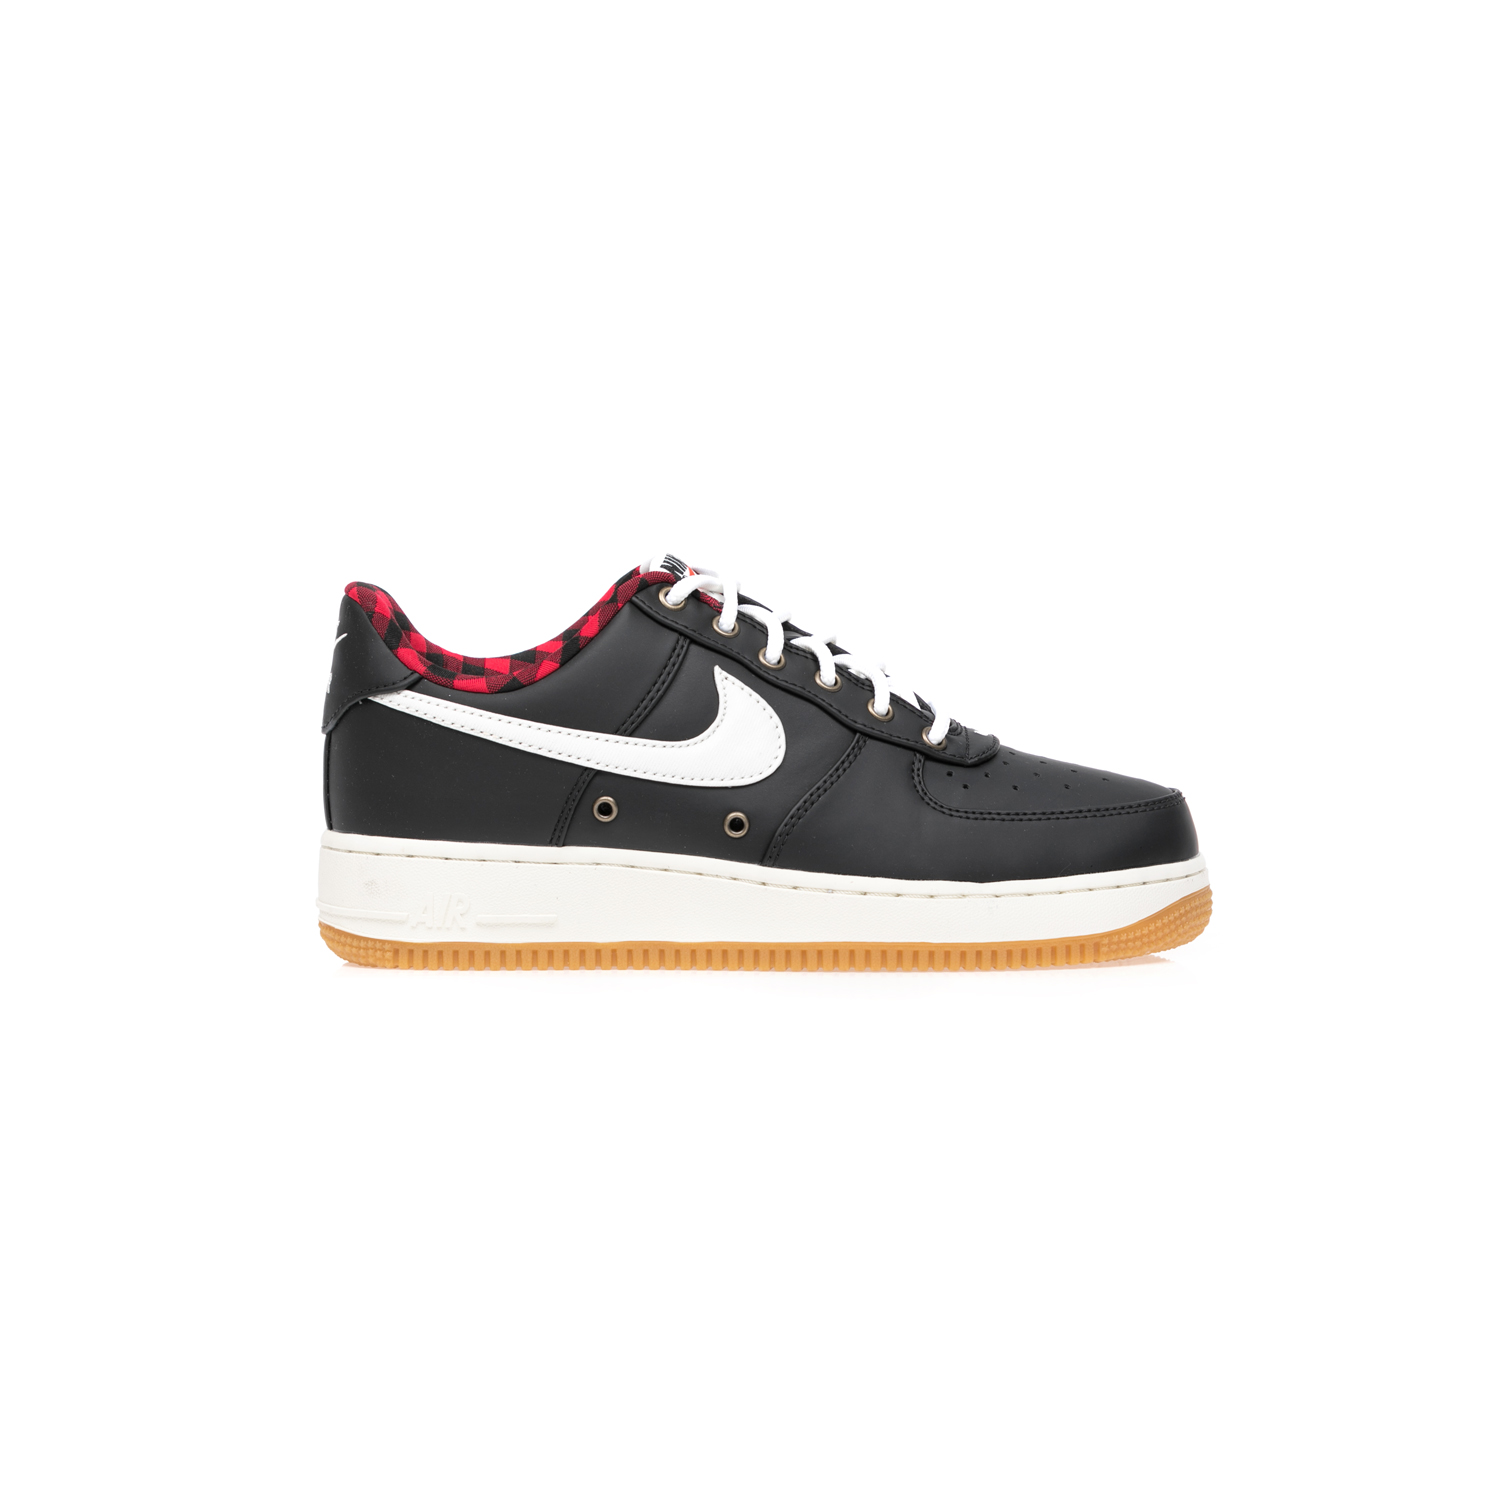 NIKE – Αντρικά παπούτσια NIKE AIR FORCE 1 '07 LV8 μαύρα